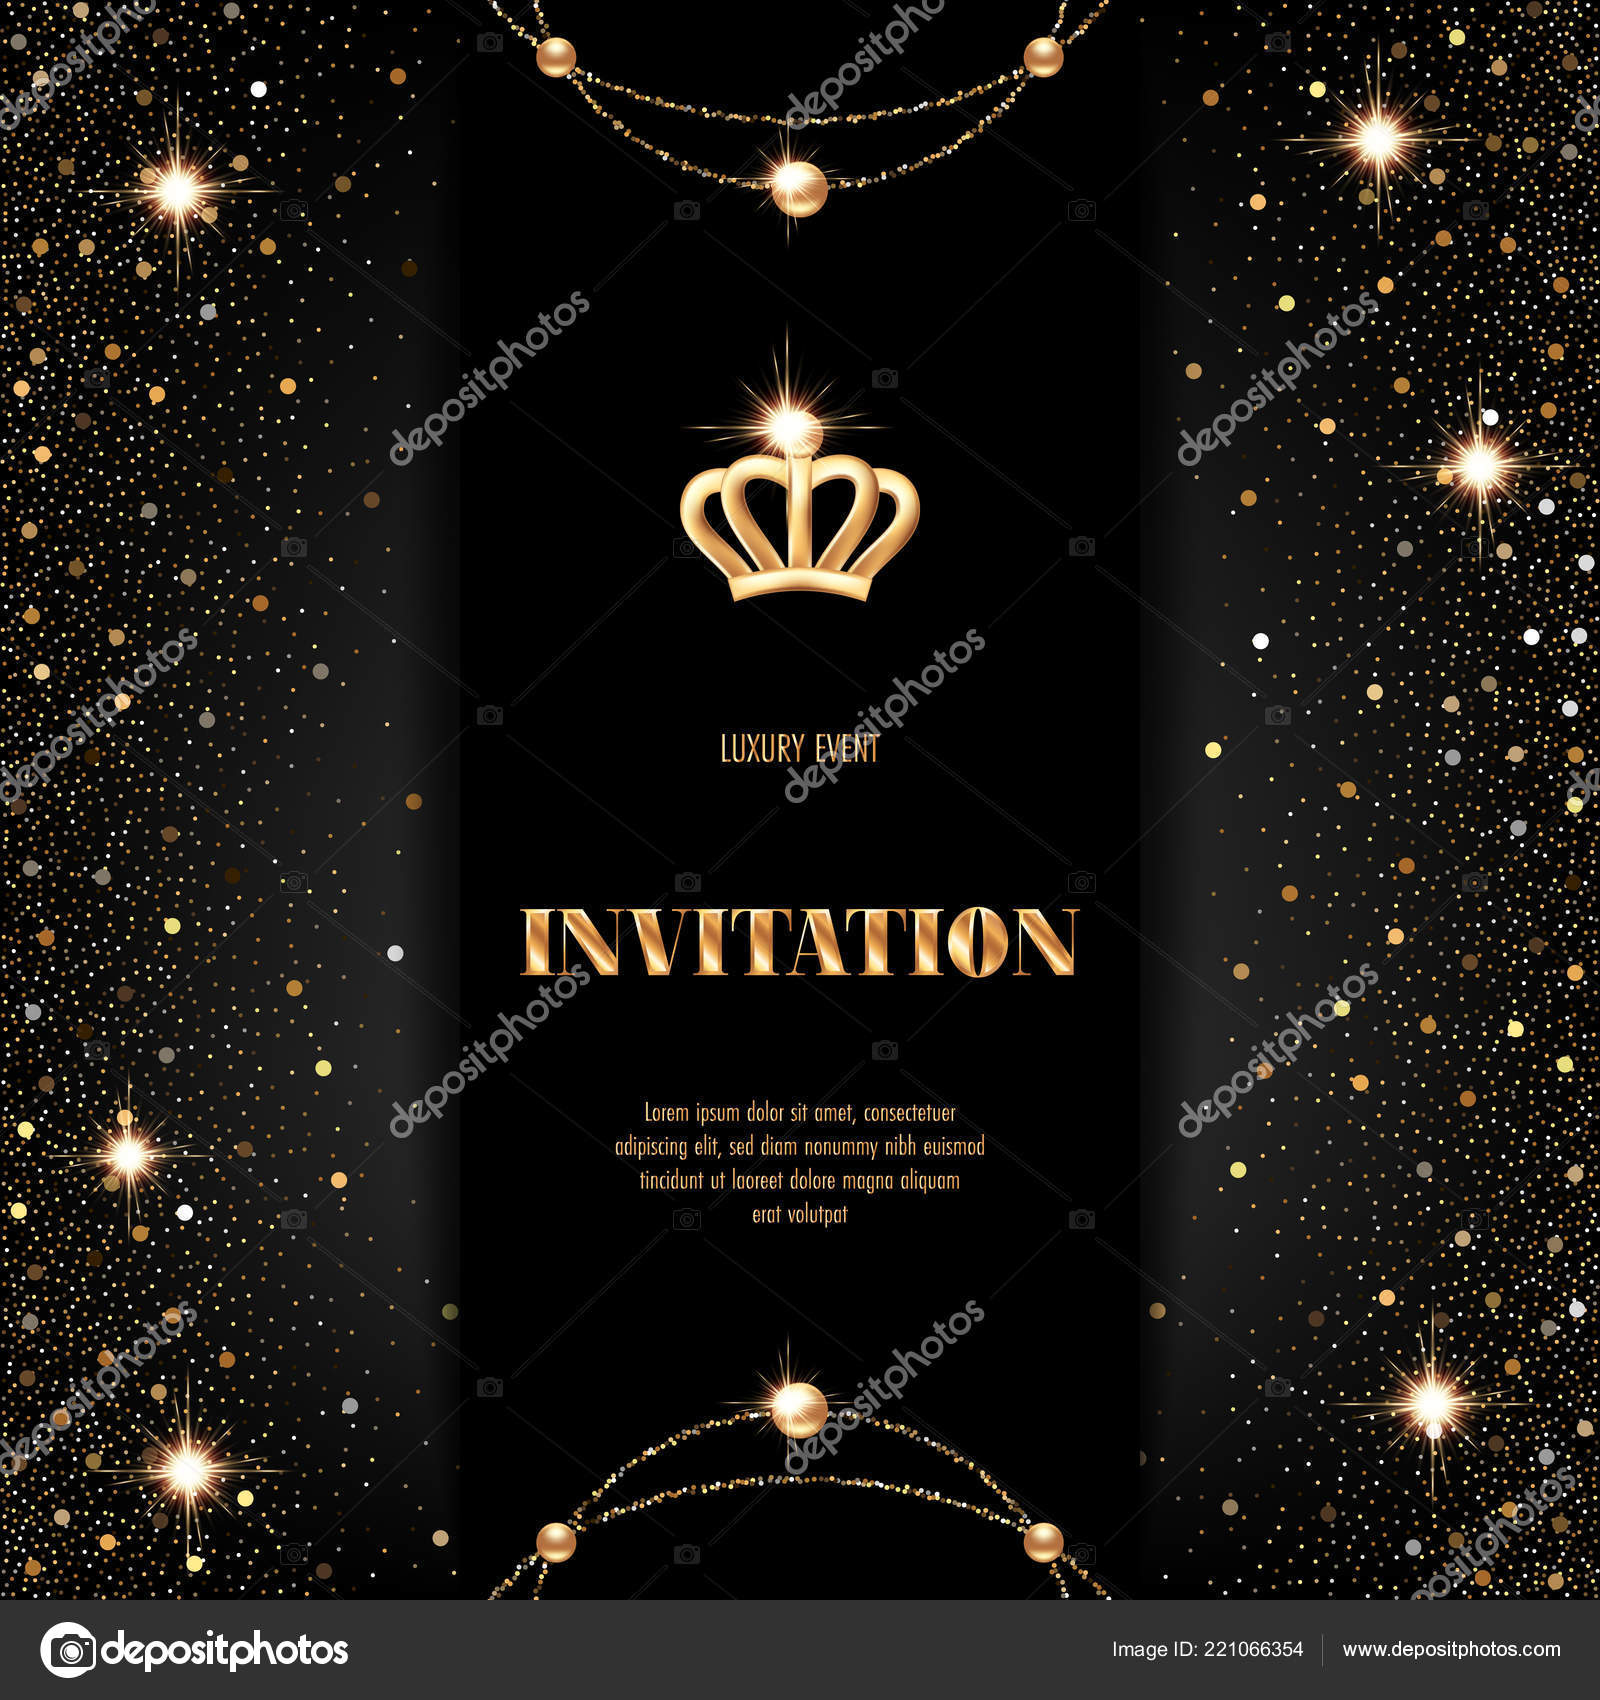 vip invitation template golden crown confetti sparkling beads black